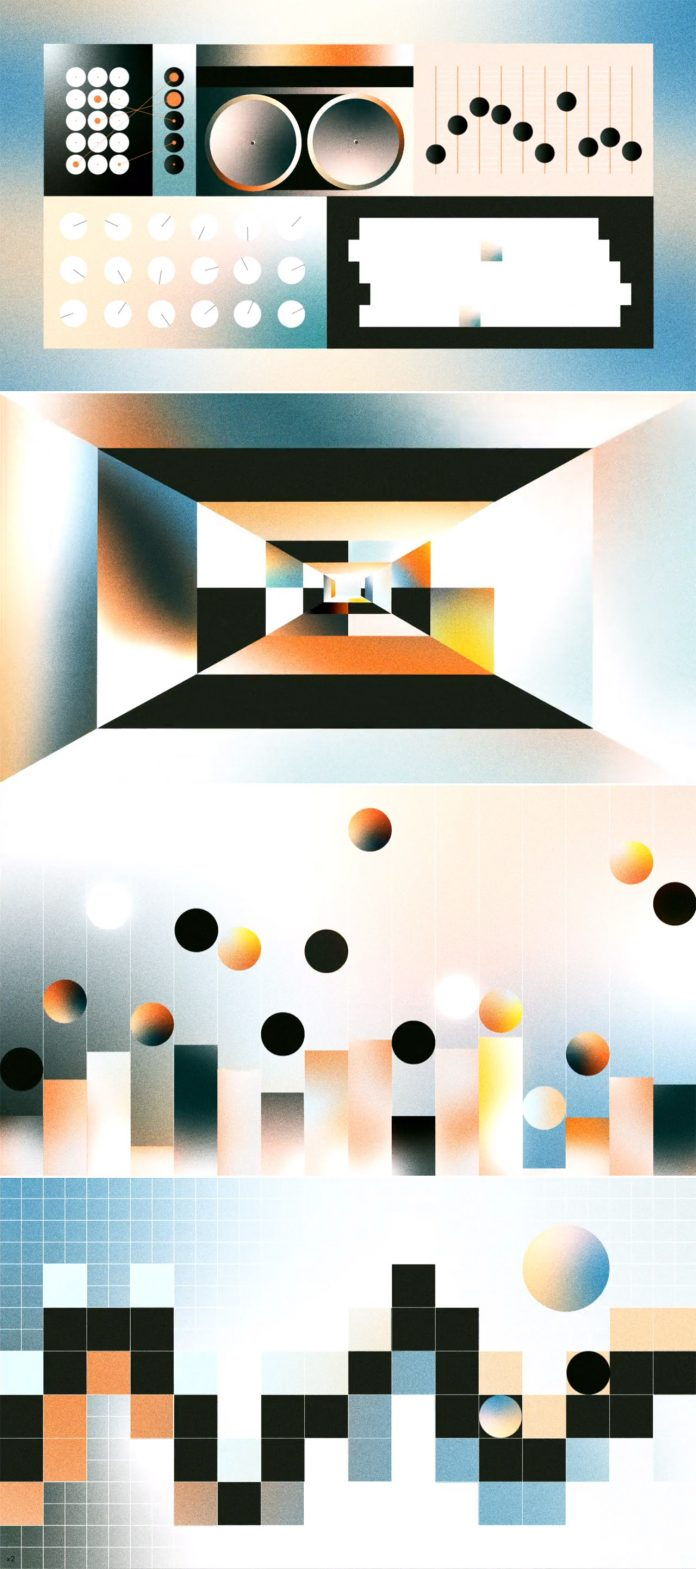 Stills from Synthesis and Sound Design by Richard Devine